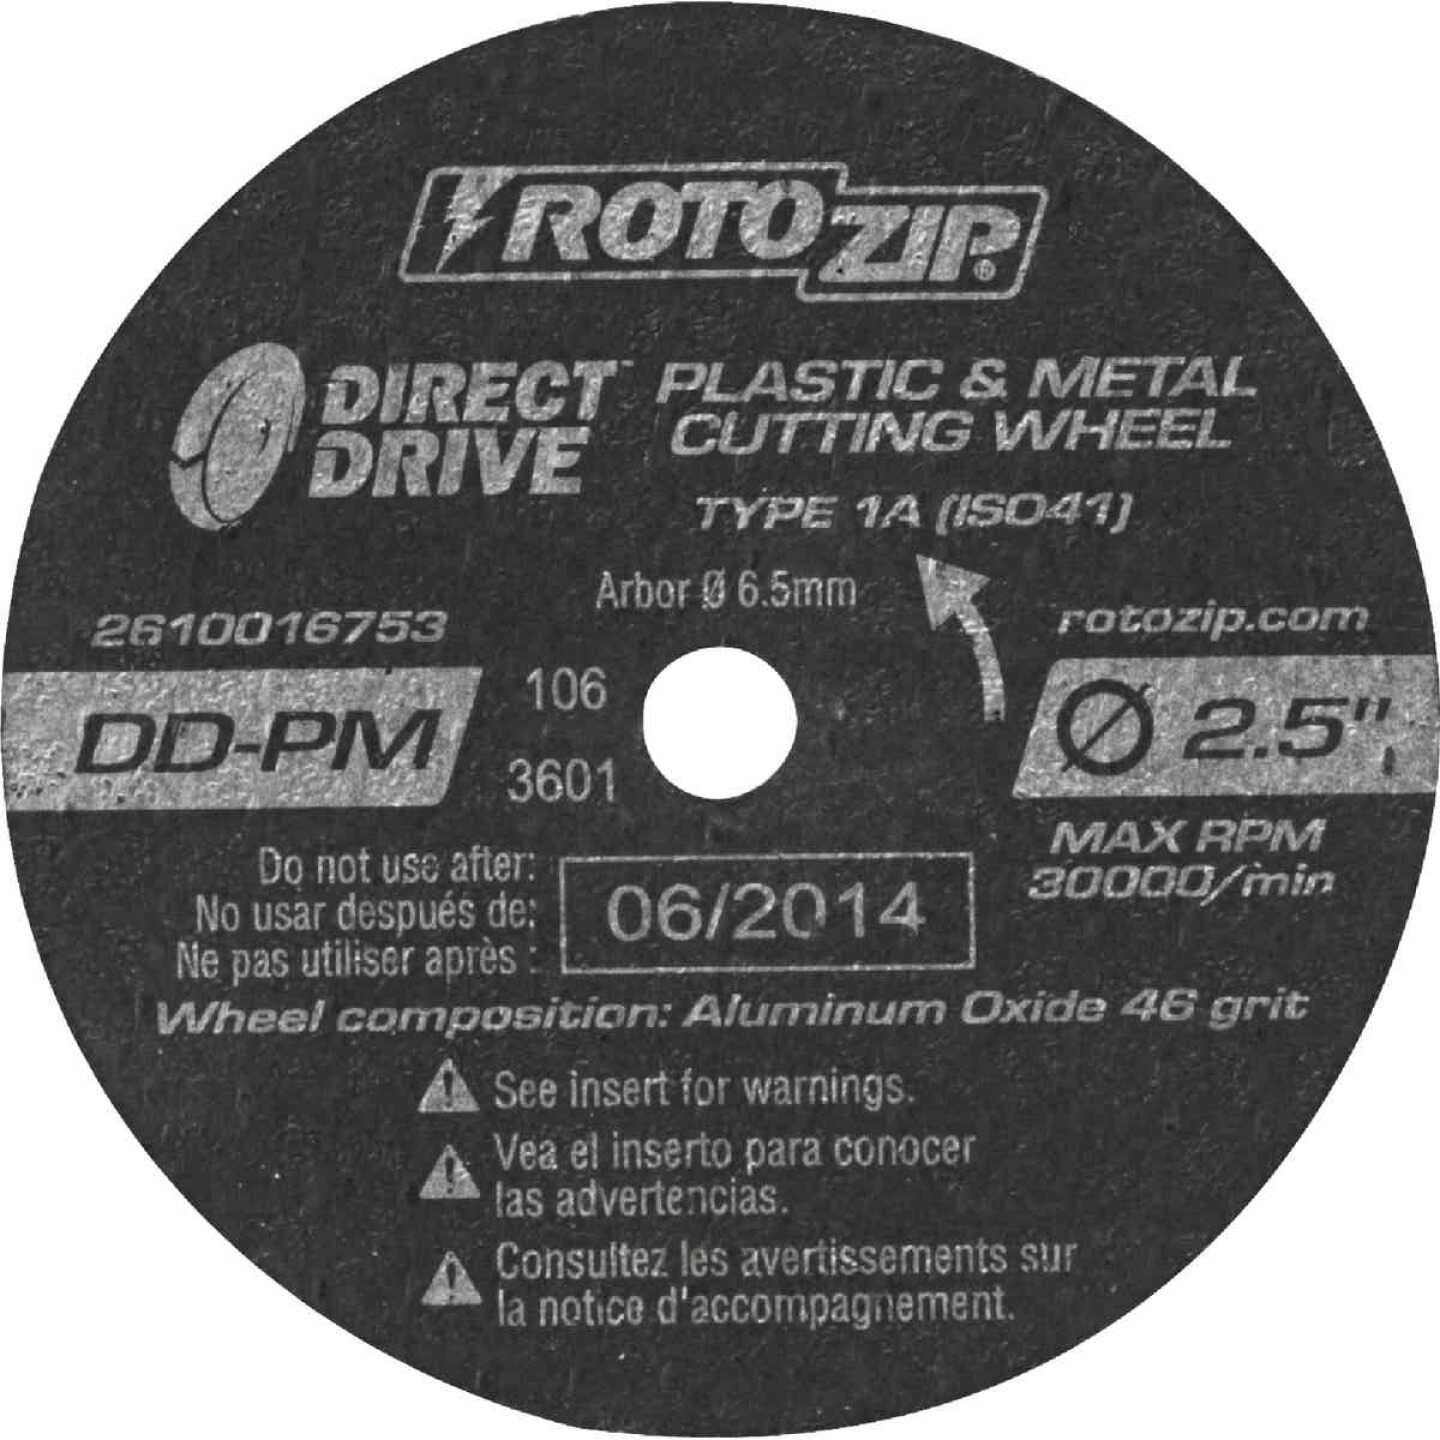 Rotozip Direct Drive 2-1/2 In. 30,000 rpm Plastic and Metal Cutting Wheel Image 1